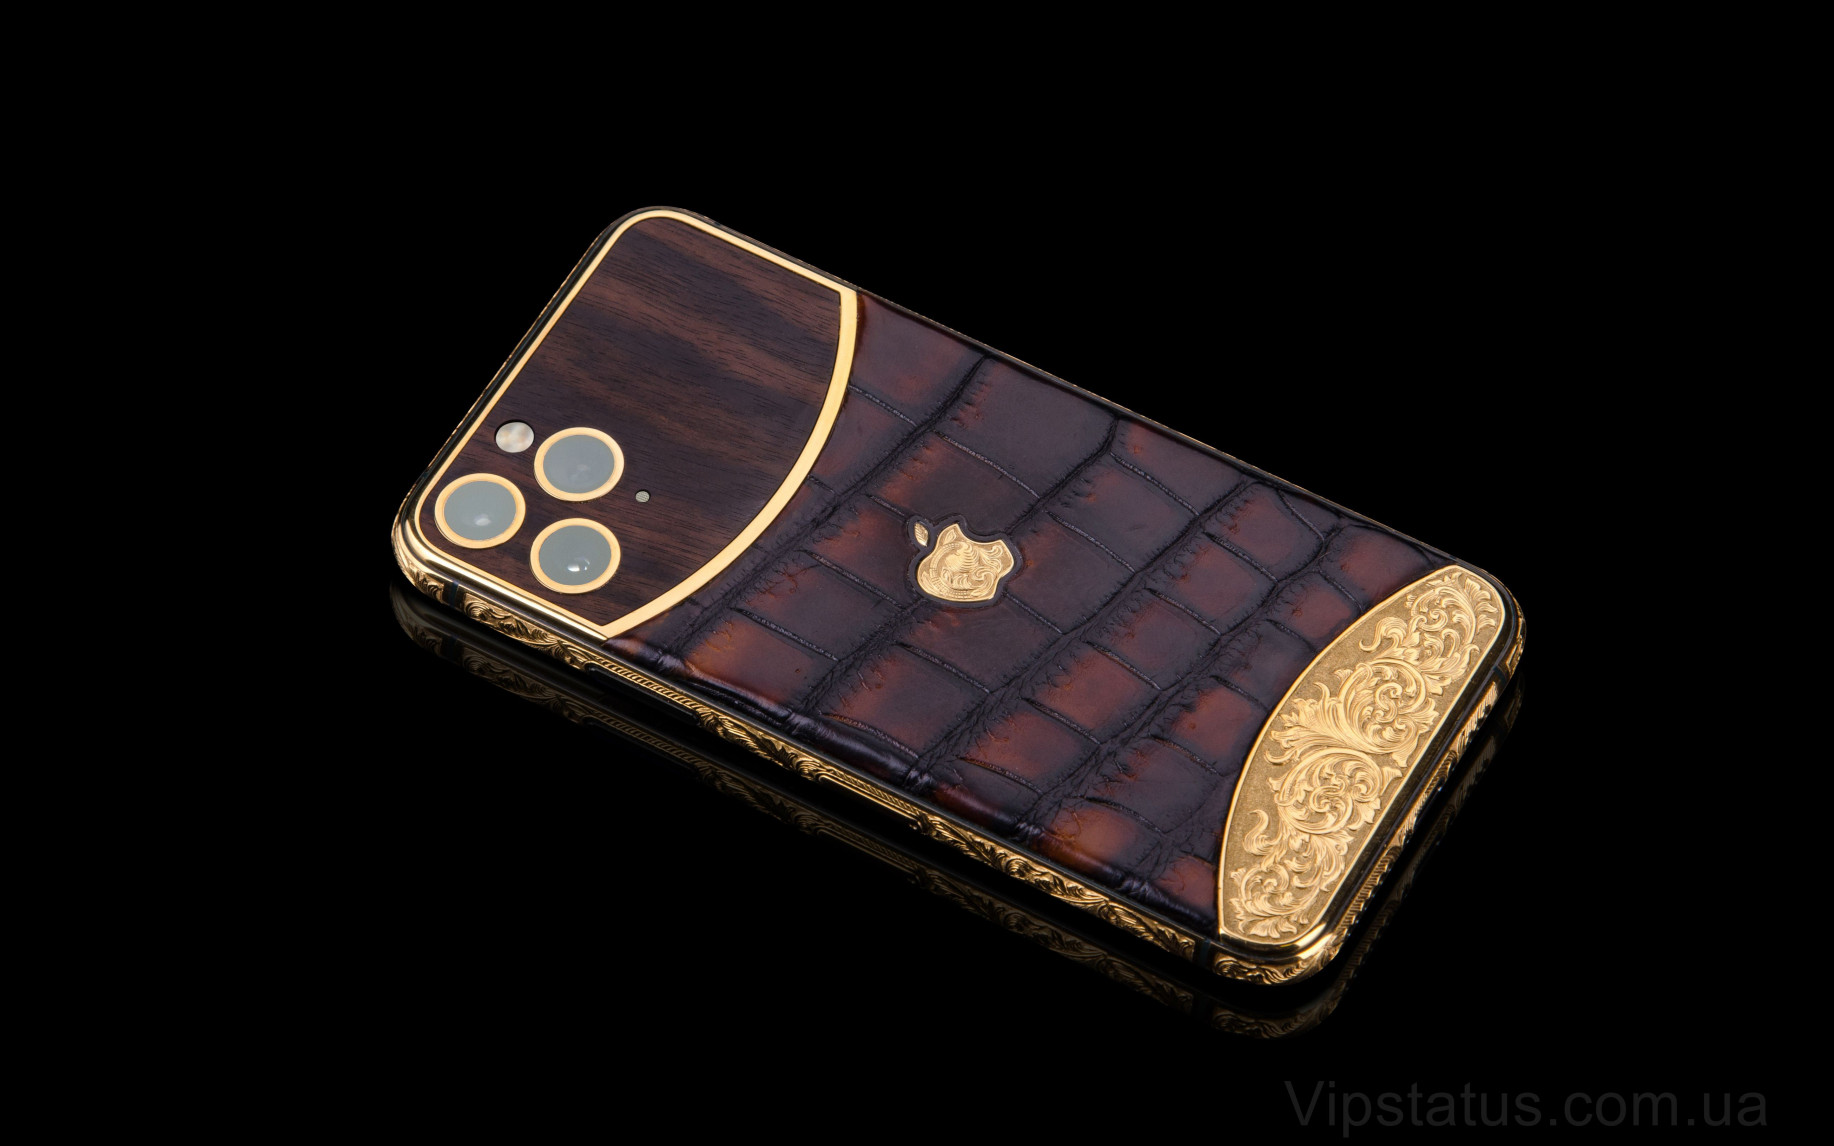 Elite Brown Edition IPHONE 11 PRO 512 GB Brown Edition IPHONE 11 PRO 512 GB image 3